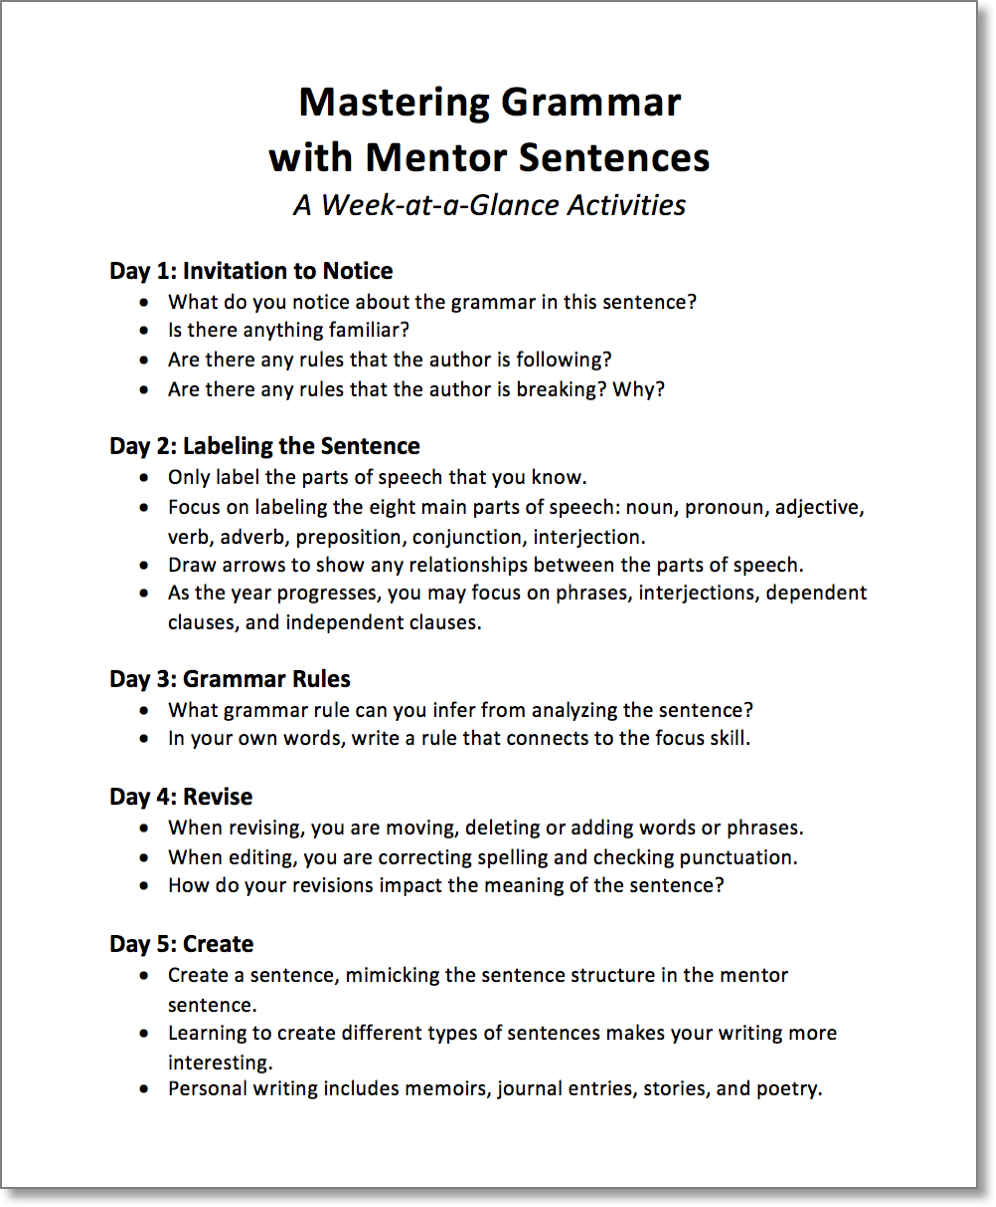 Mastering grammar with mentor sentences part 2 walks you through mastering grammar with mentor sentences part 2 walks you through four grammar bell ringer activities using mentor sentences harvested from classroom stopboris Image collections